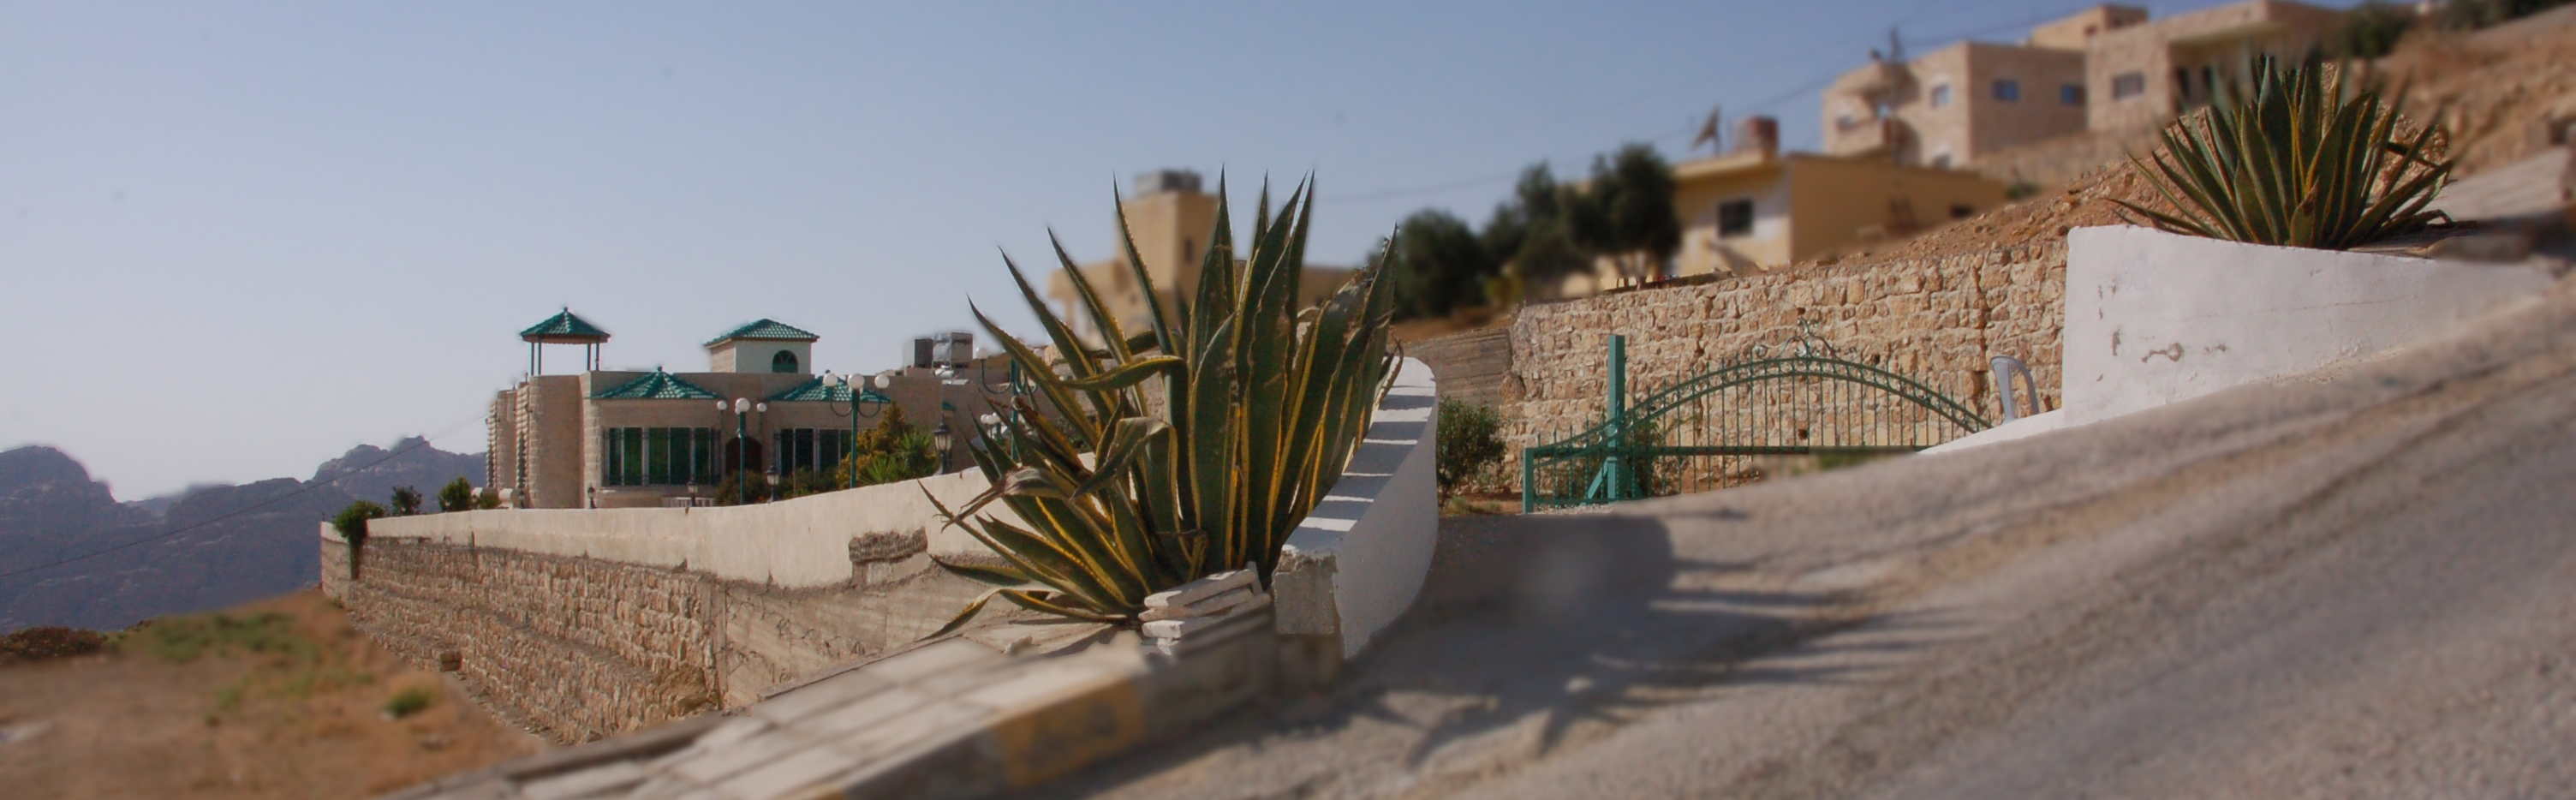 Entrance to B and B Petra Fig Tree Villa with agaves